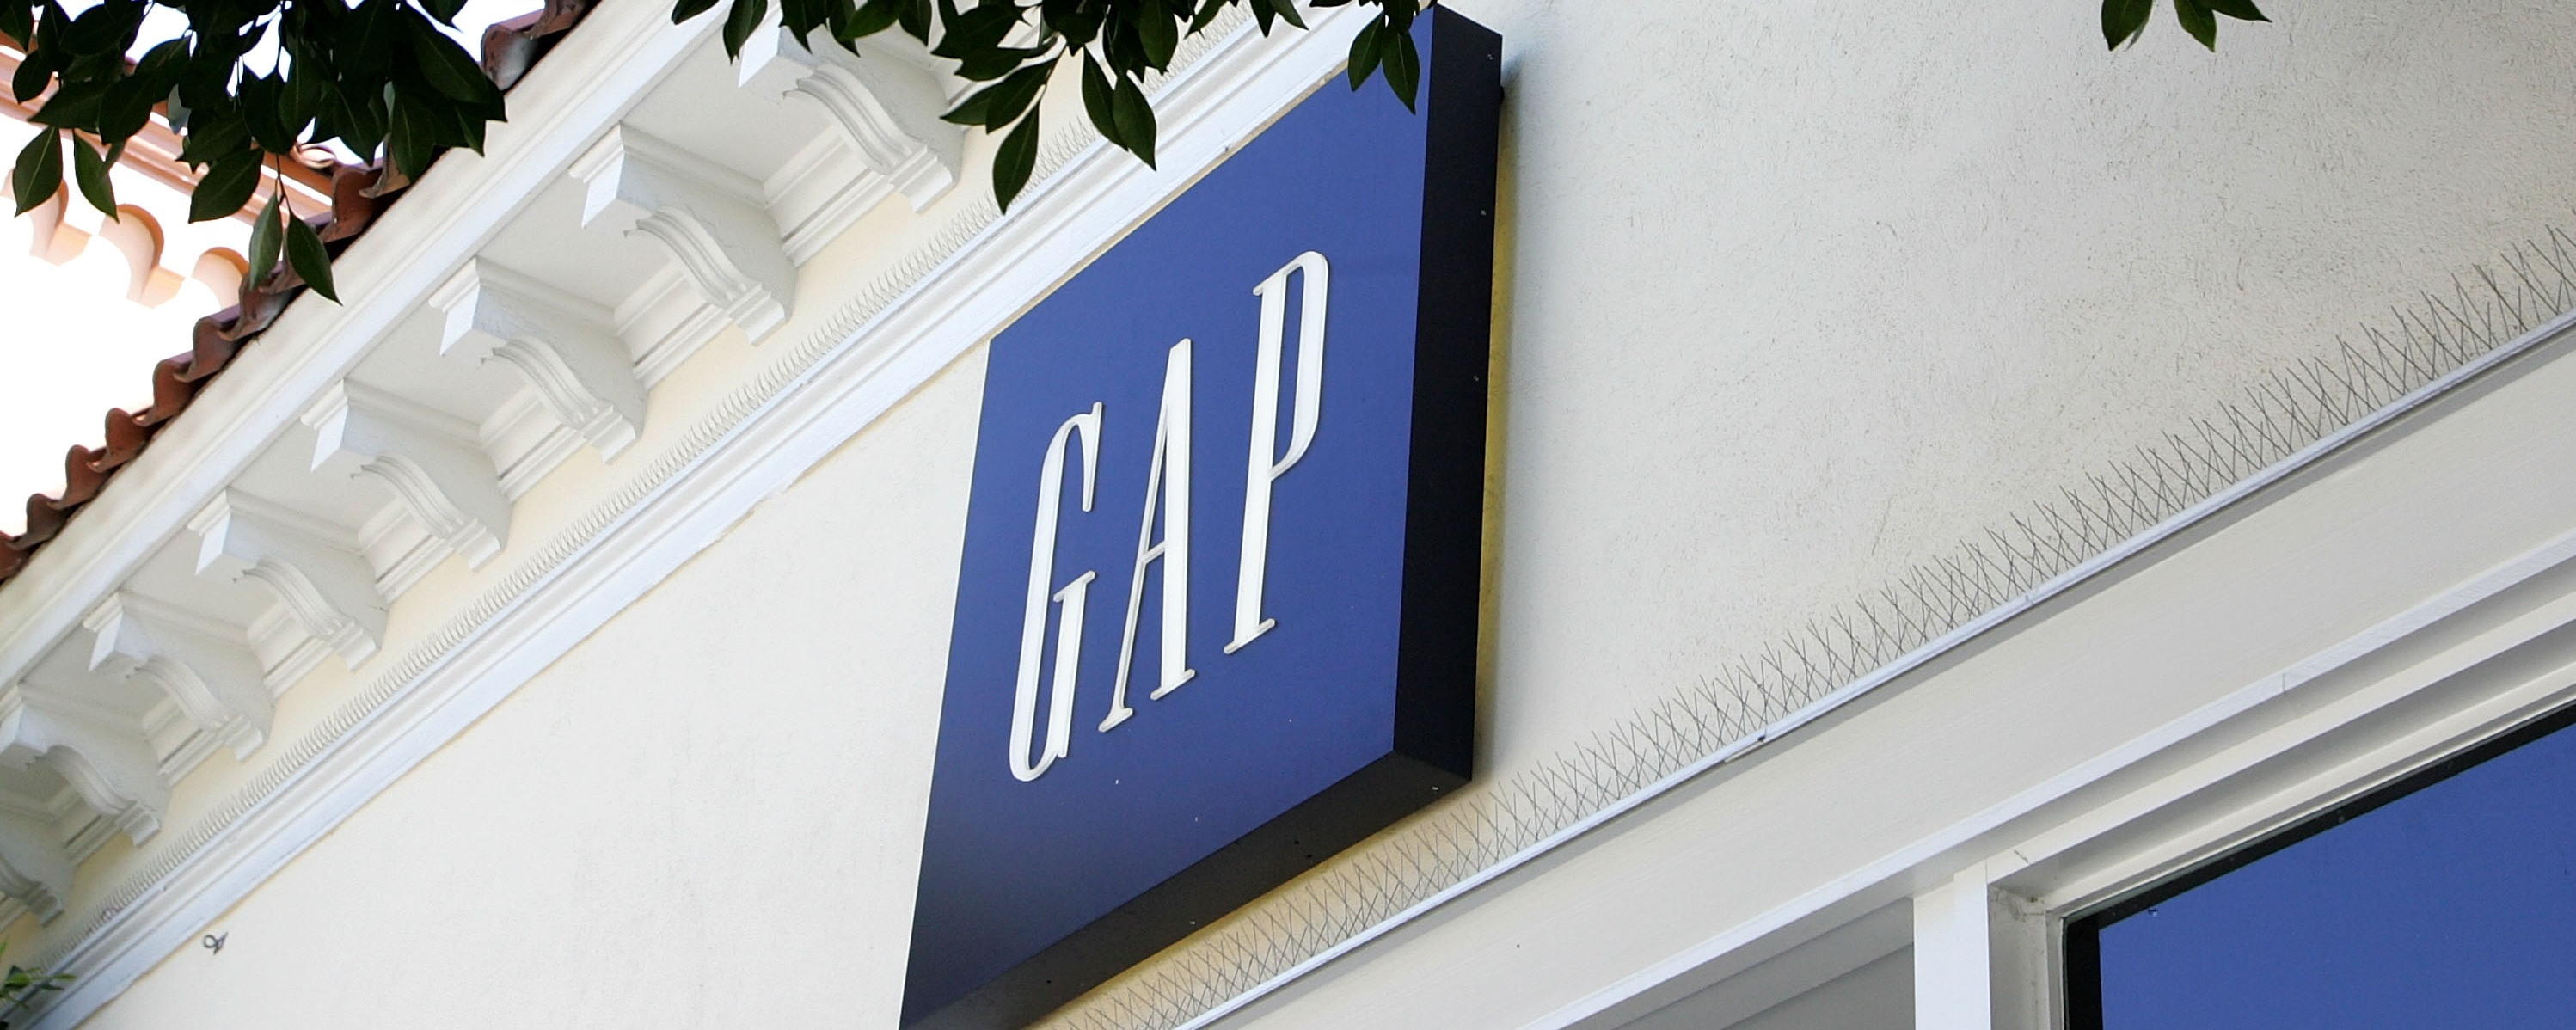 Gap Retail Storefront Sign